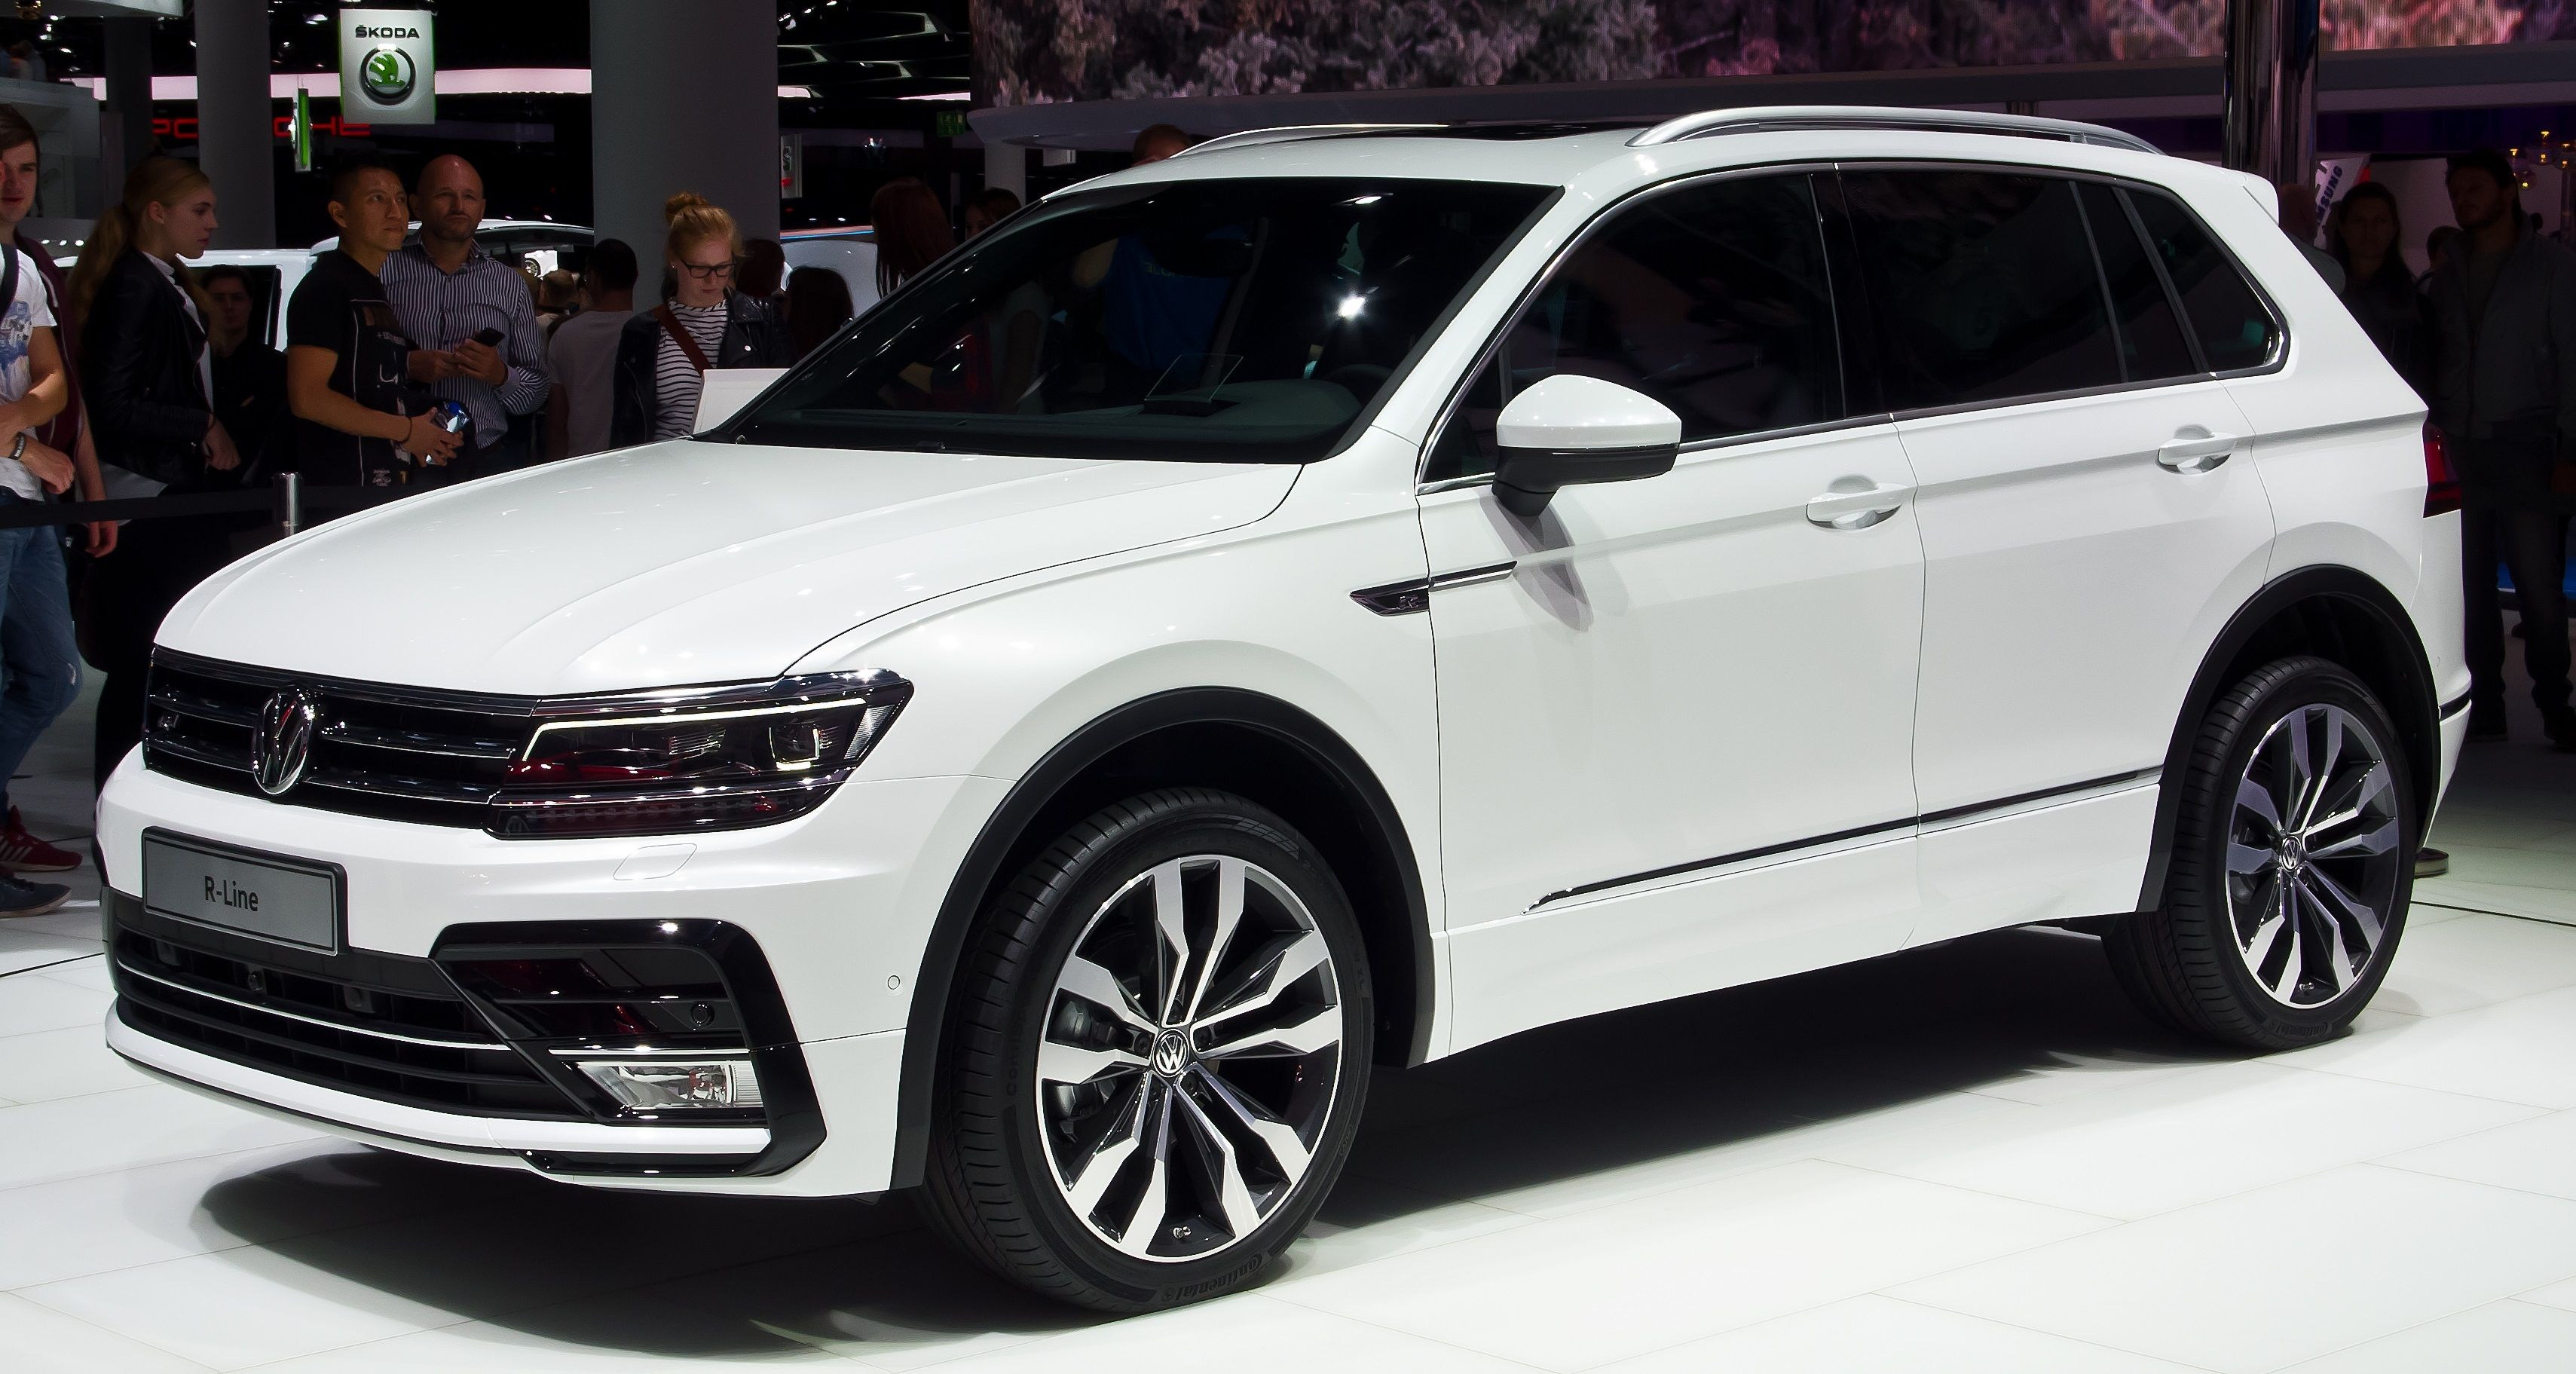 Volkswagen tiguan unveiled at auto expo 2016 themotorlife